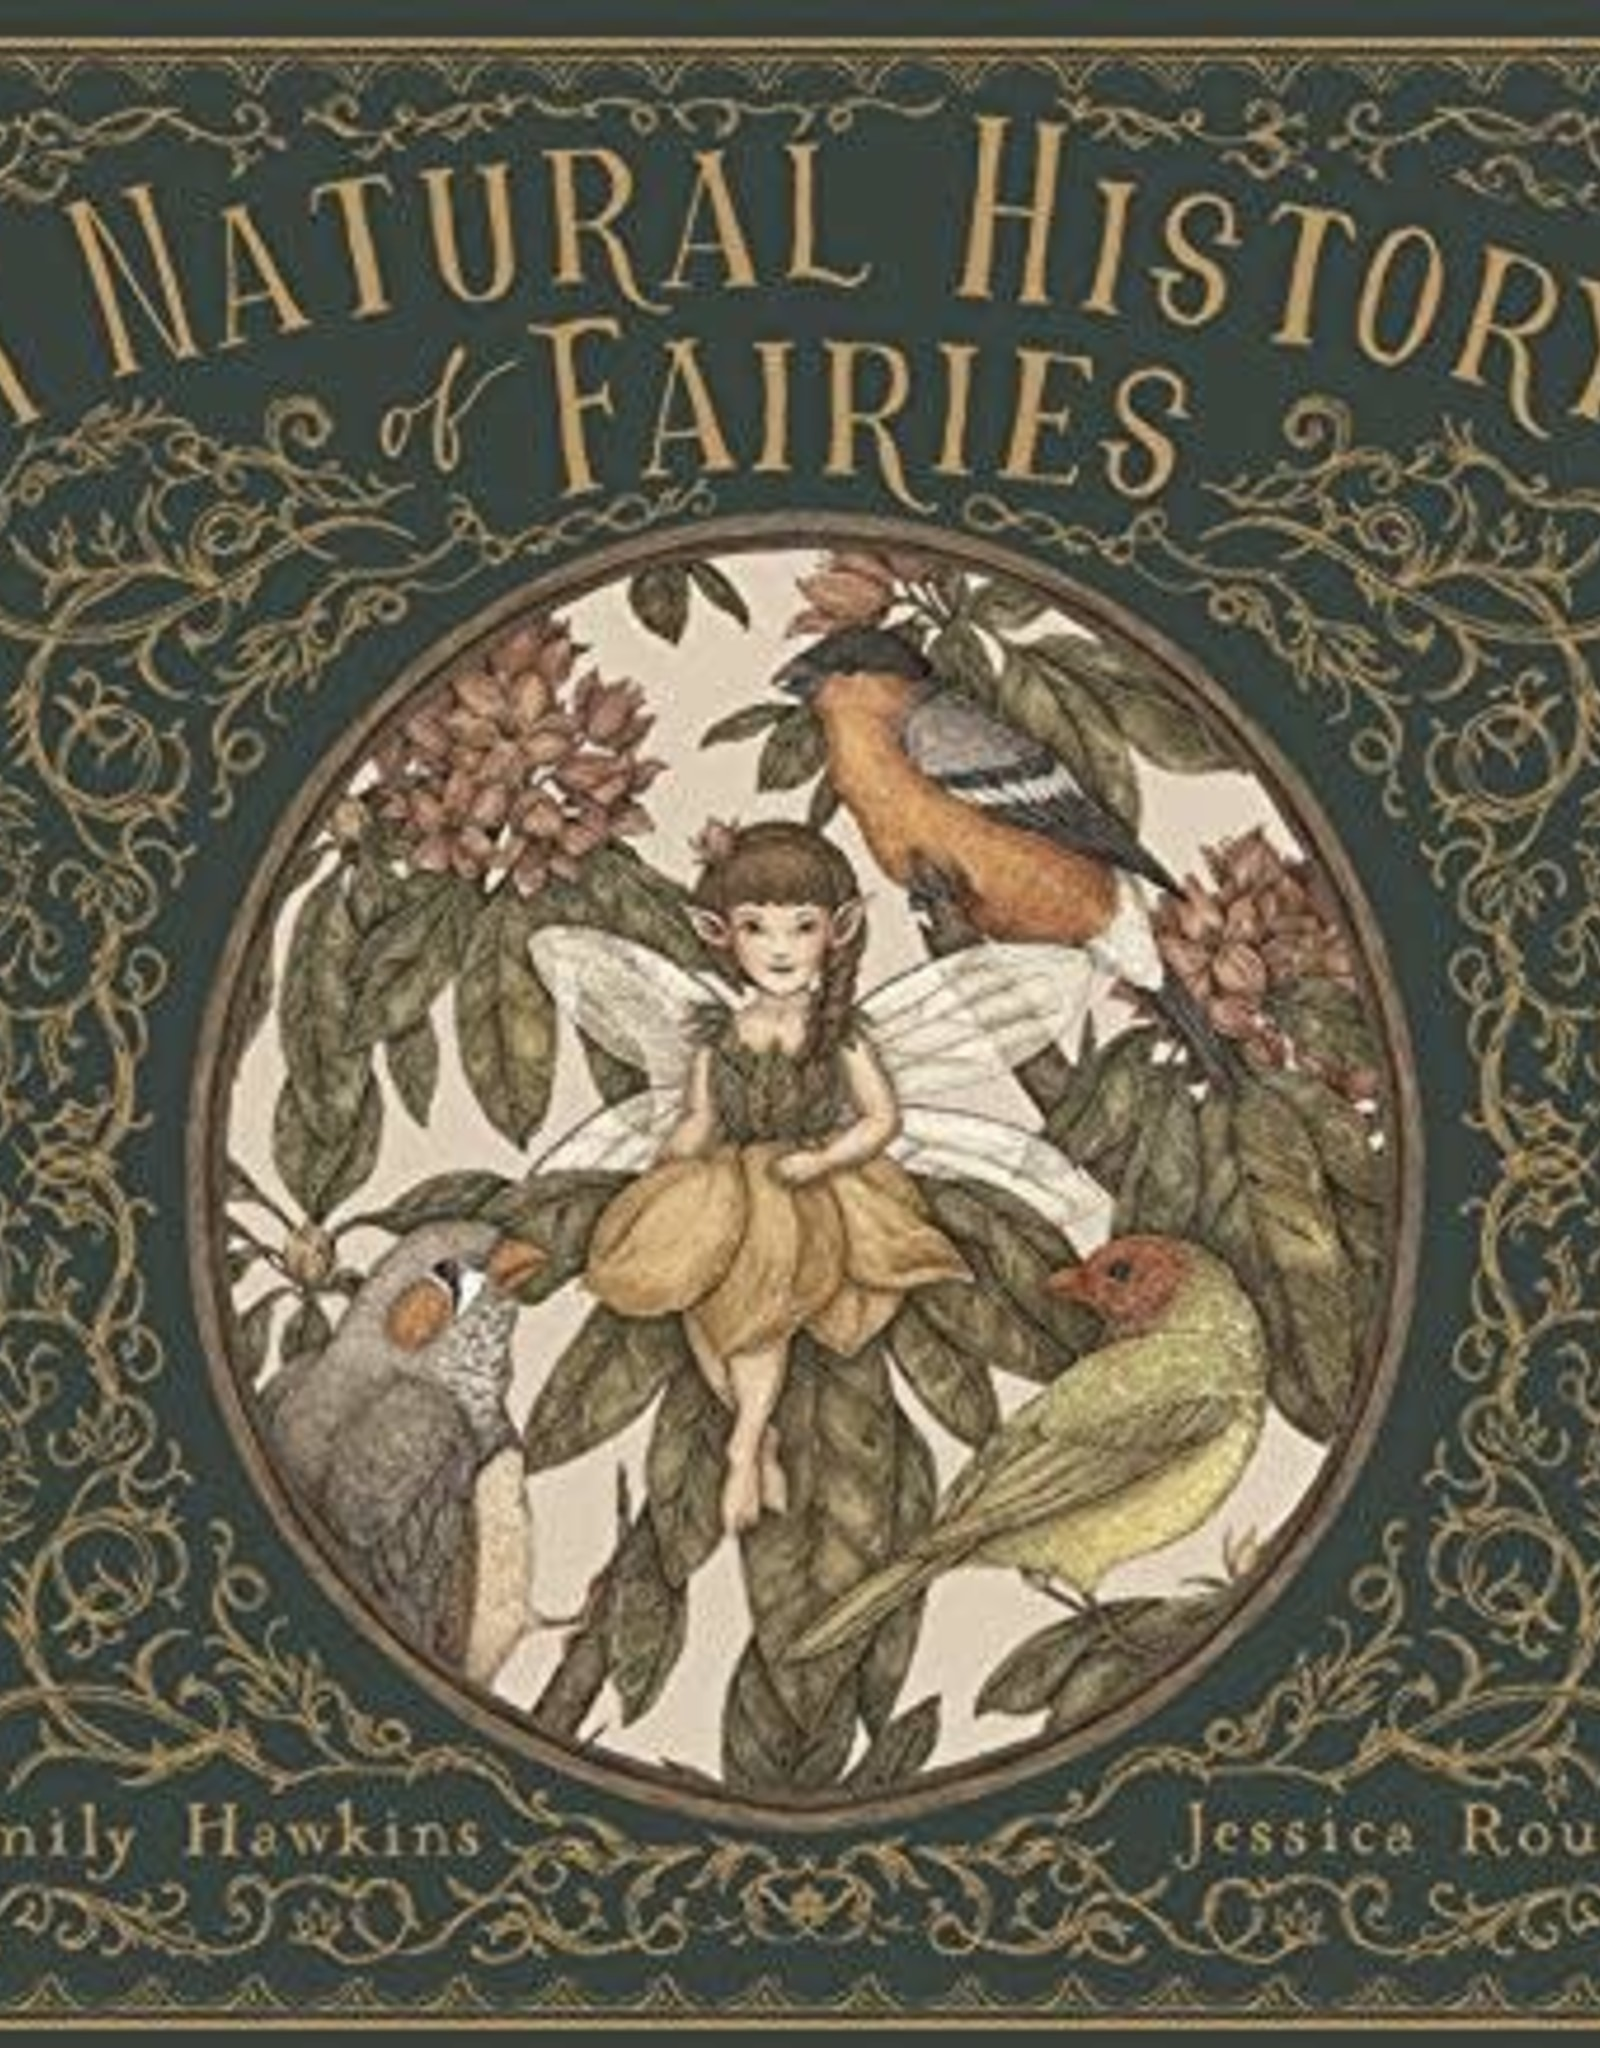 Hachette Book Group A Natural History of Fairies